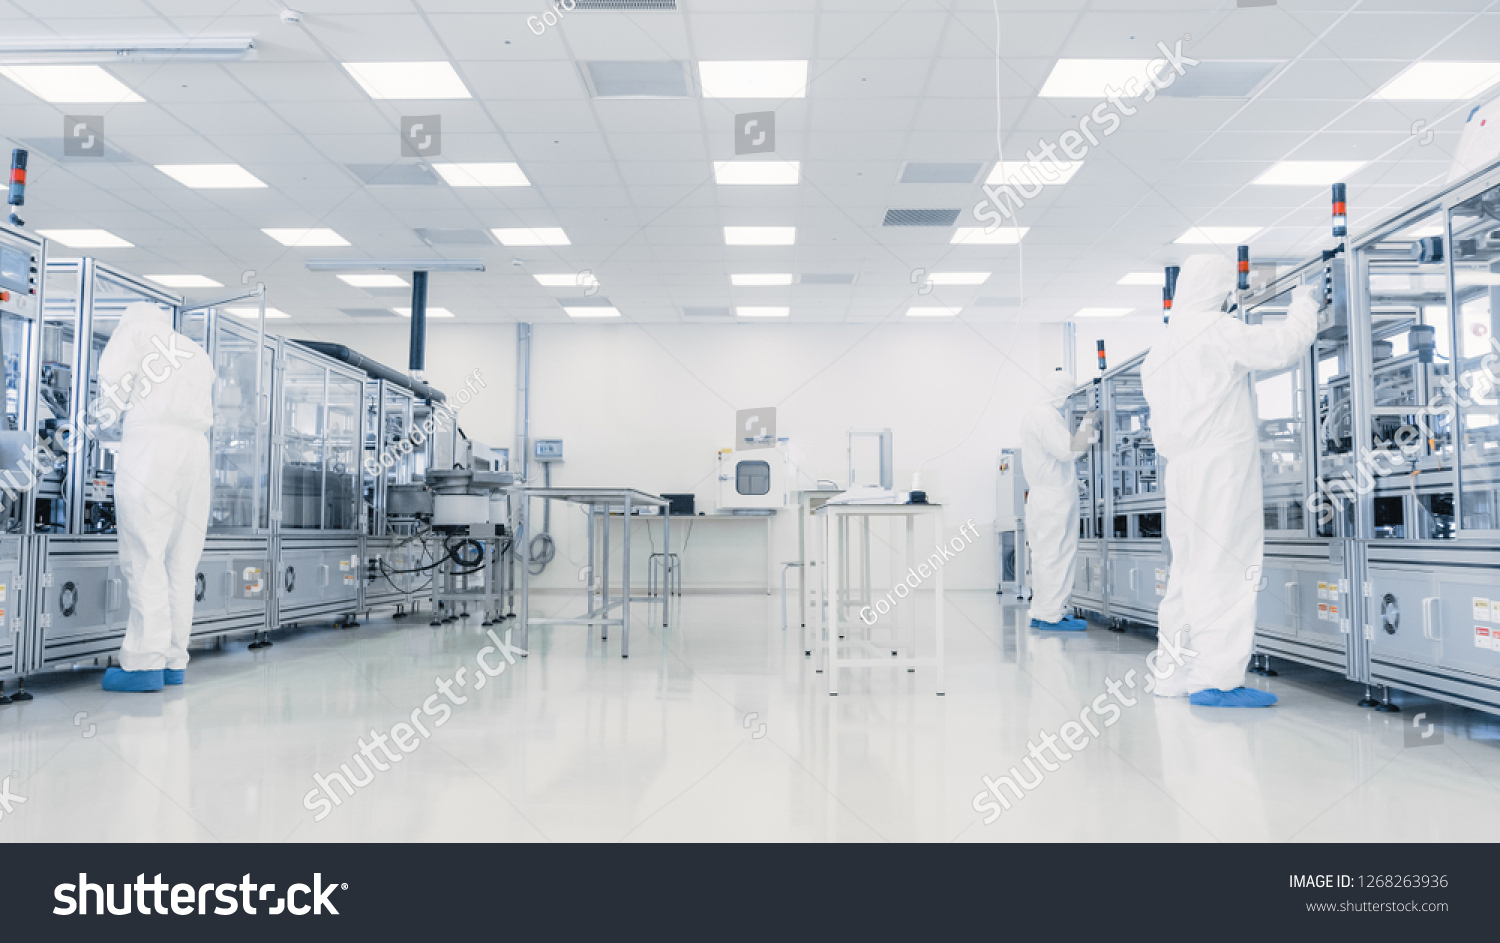 Team of Research Scientists in Sterile Suits Working with Computers, Microscopes and Modern Industrial Machinery in the Laboratory. Product Manufacturing Process: Pharmaceutics, Semiconductors #1268263936